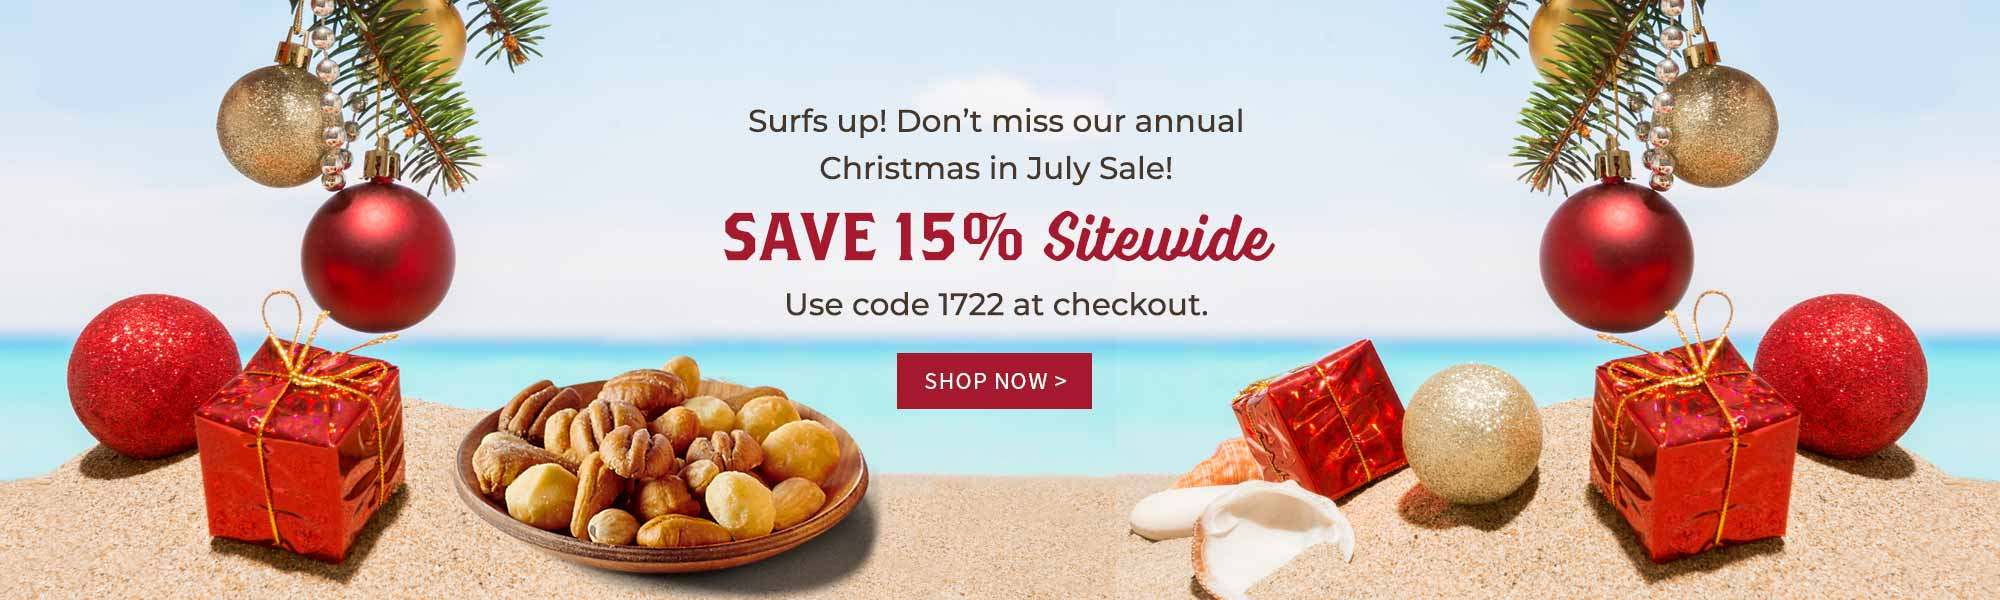 Don't miss our annual Christmas in July Sale! SAVE 15% Sitewide Use code 1722 at checkout.